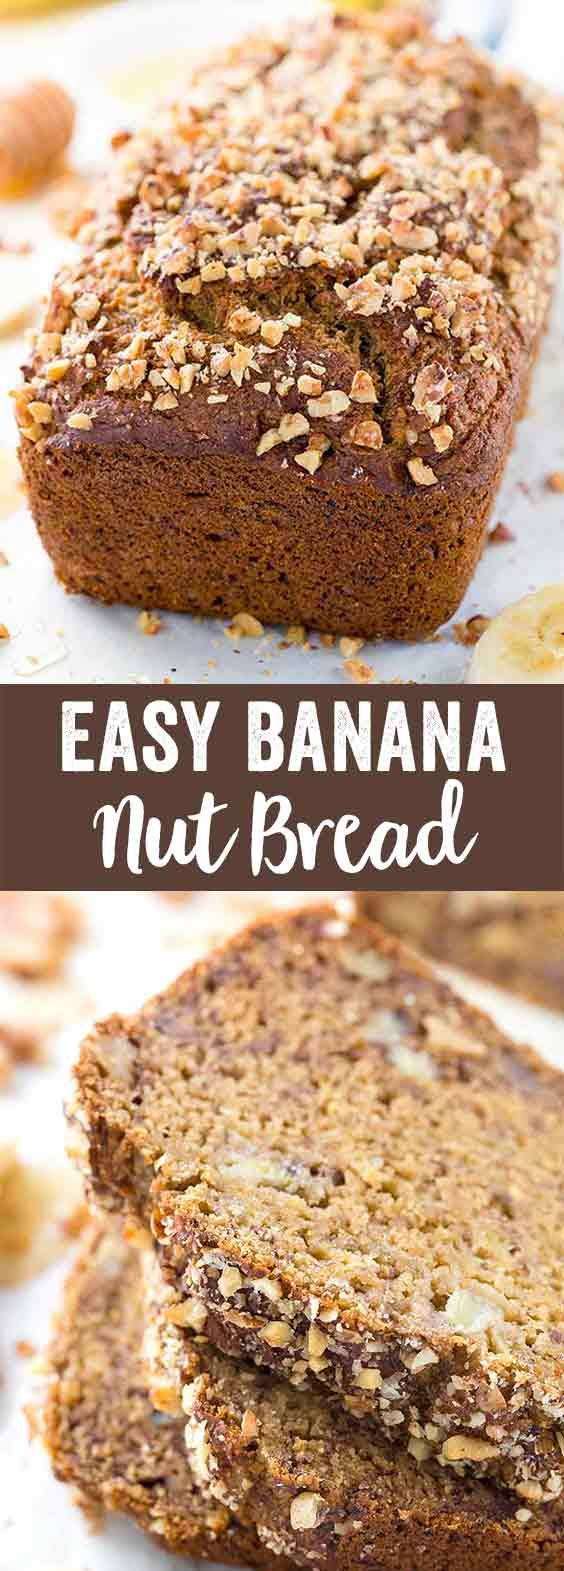 Whole Wheat Banana Nut Bread - A healthy quick bread recipe made with wholesome ingredients like chopped walnuts, applesauce, coconut oil, and honey. via @foodiegavin